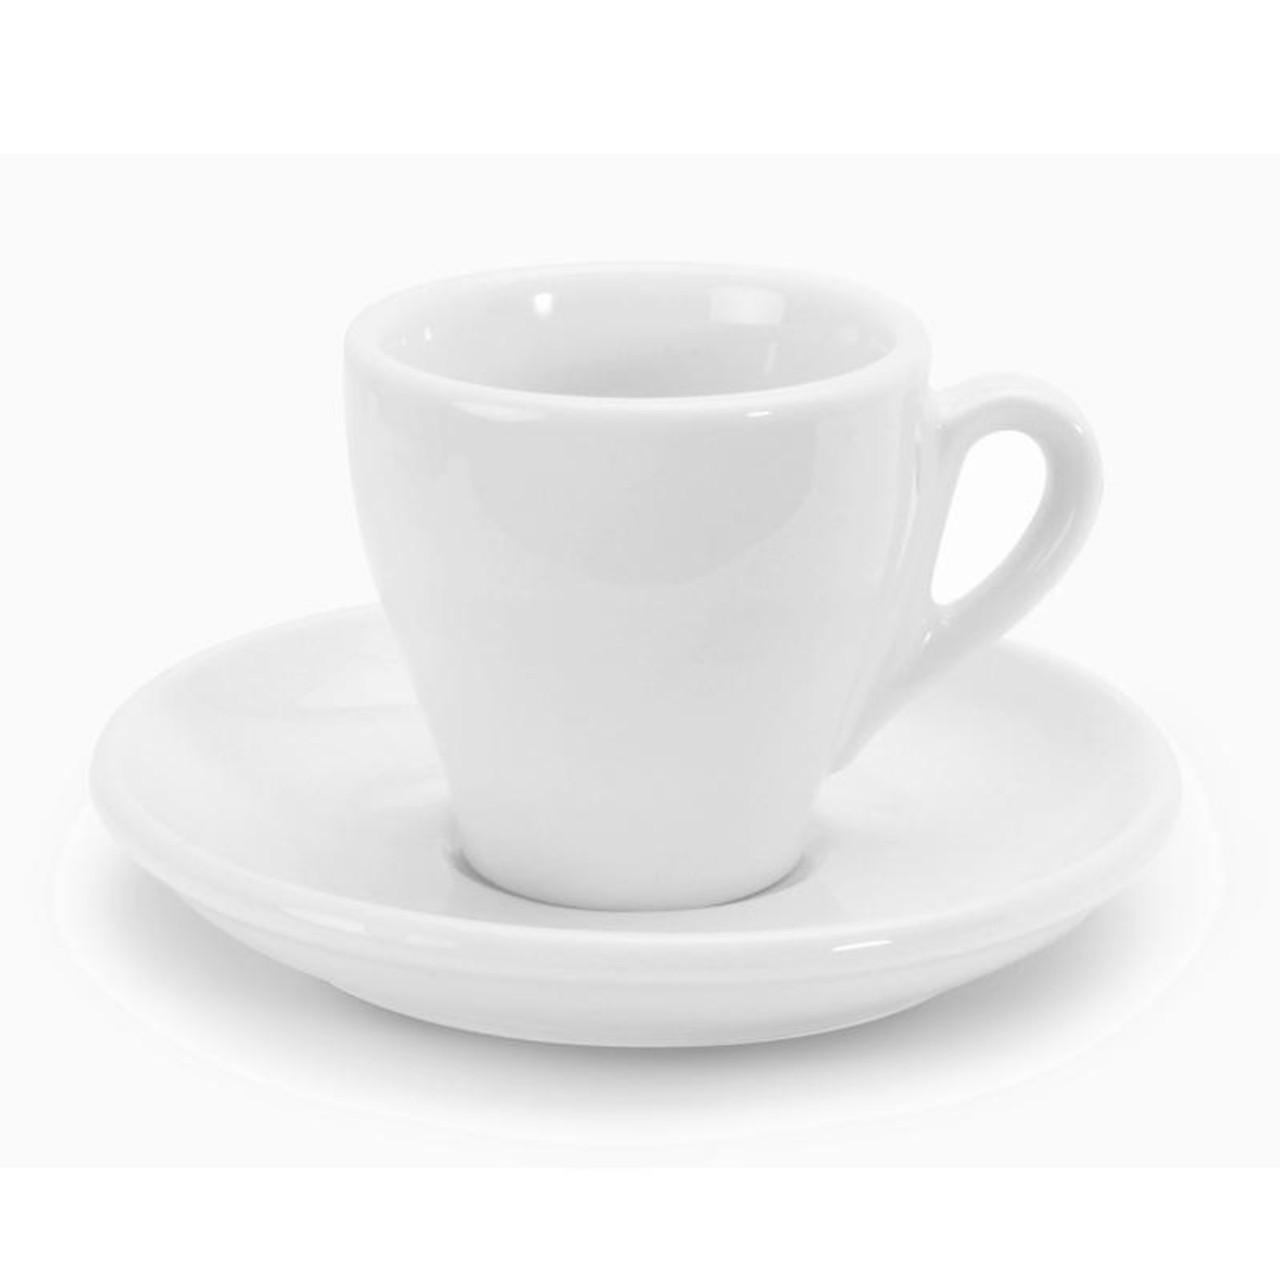 DANESCO CUP AND SAUCER ESPRESSO  - 3 oz